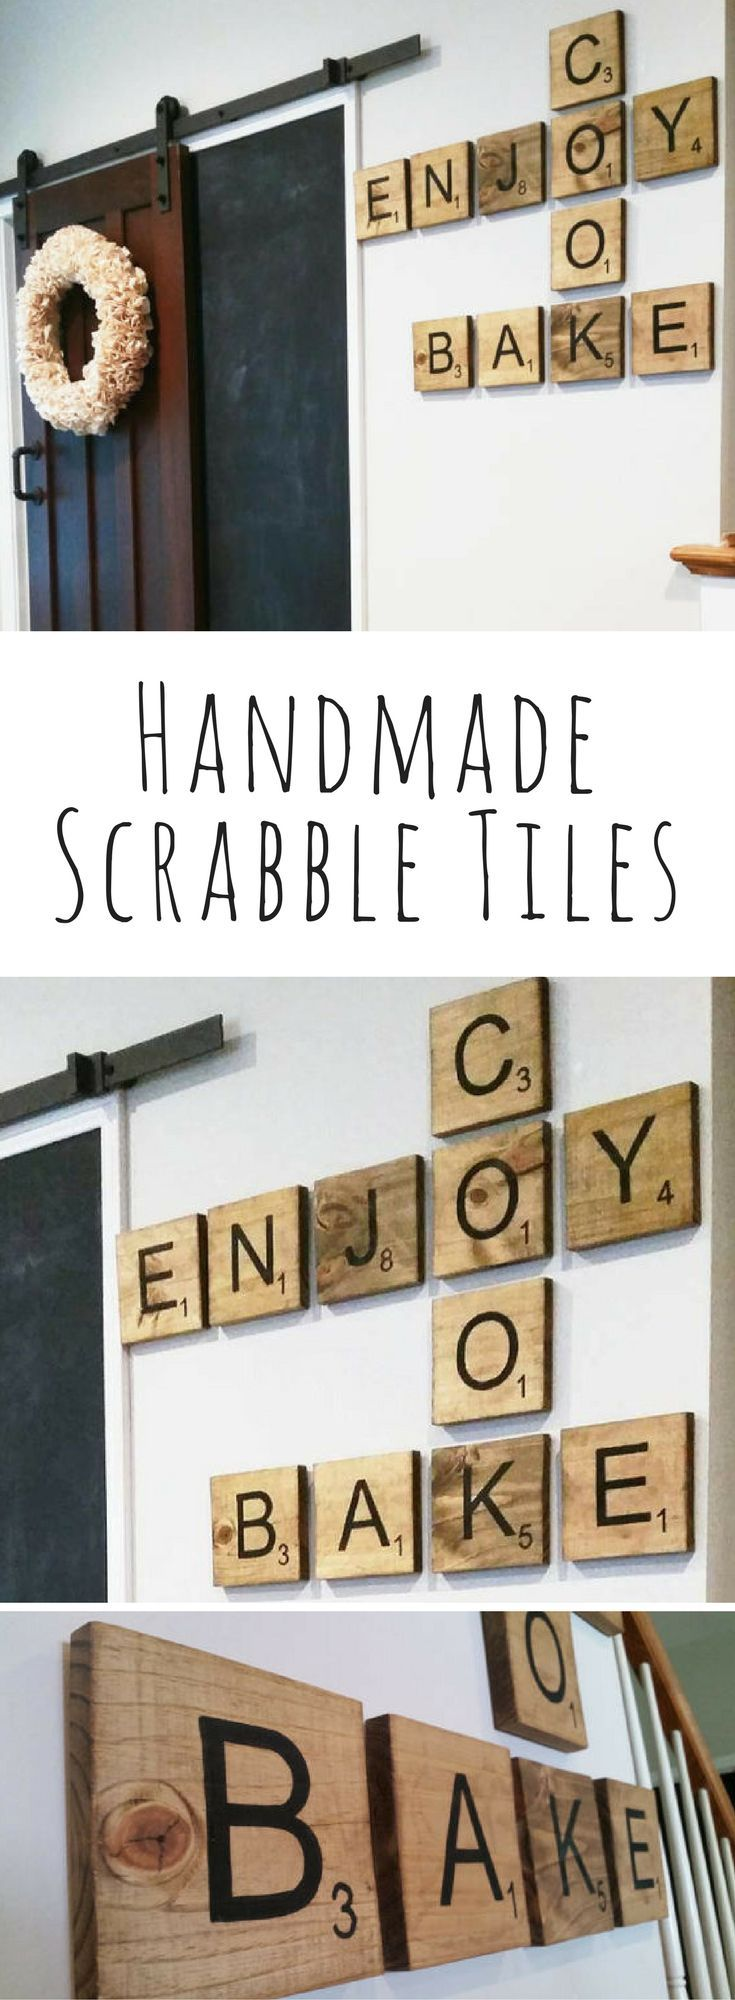 Handmade Scrabble Tiles with Point Value, Board game wall art, Rustic decor, kitchen decor, bedroom decor, living room decor, rustic wall art, farmhouse decor #ad